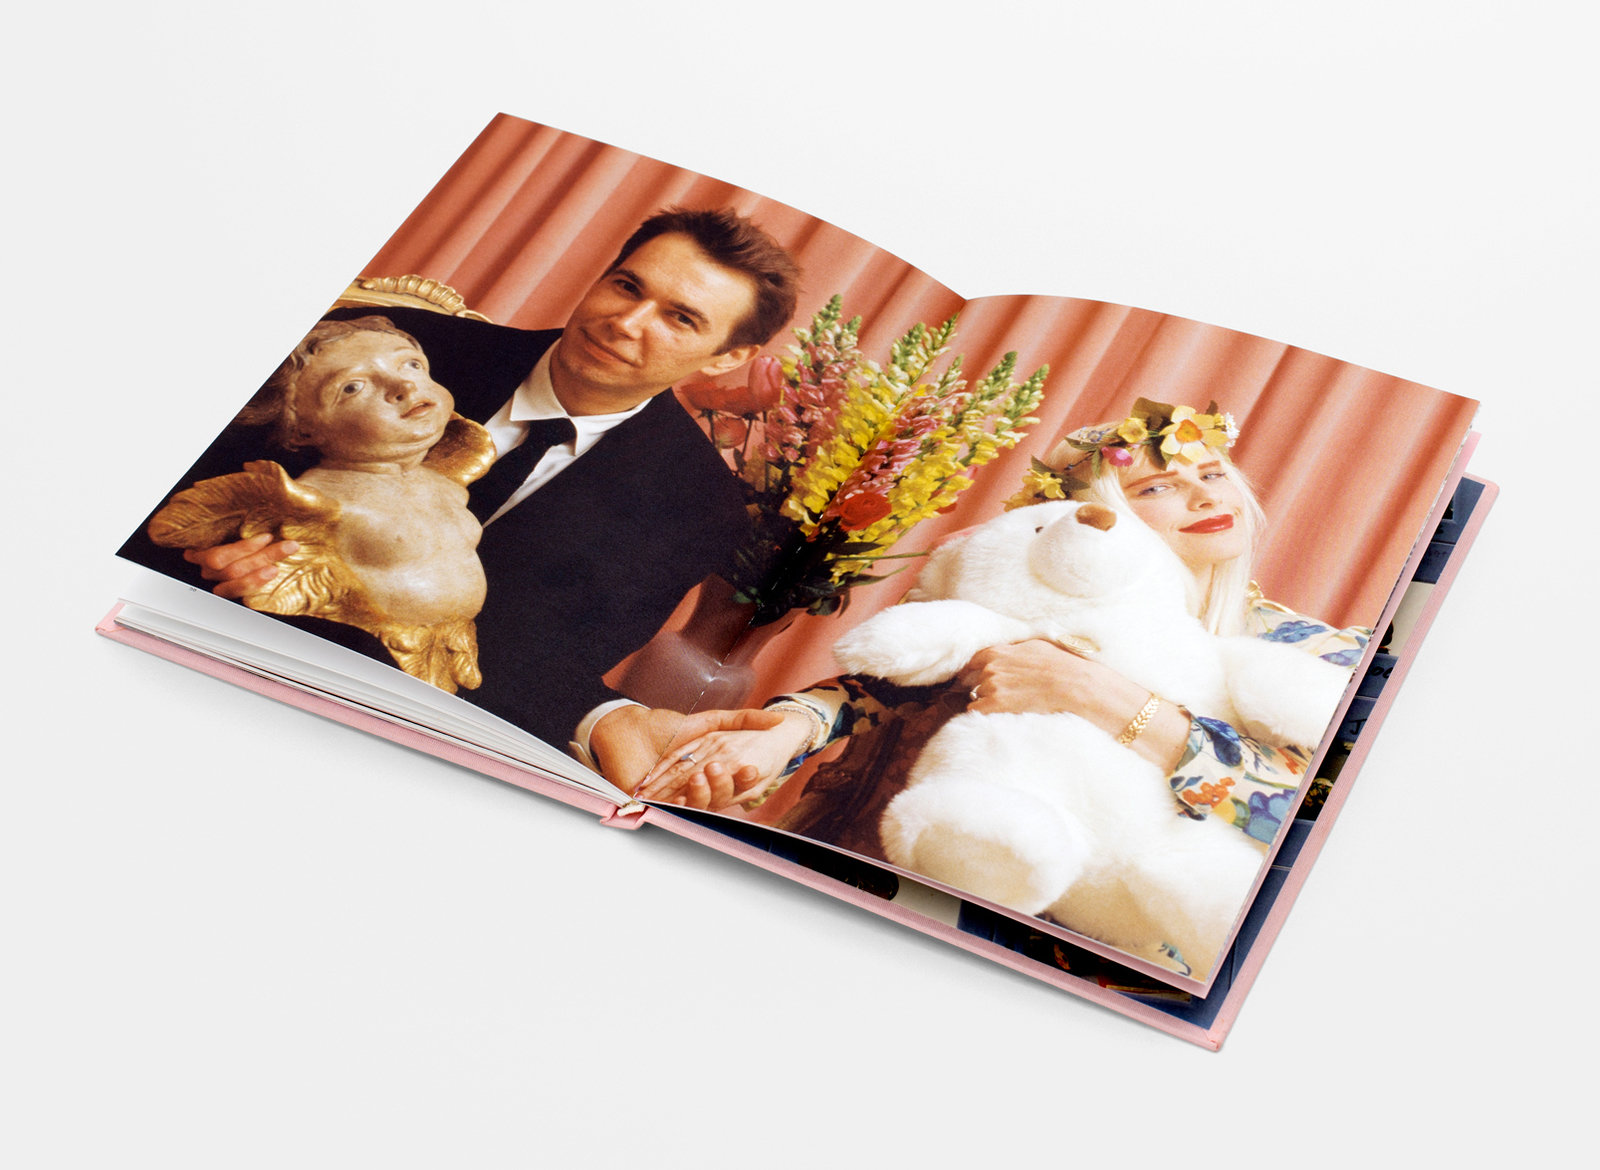 Watson and company jeff koons magazine spread 05 1600 130x54x1607x1175 q85